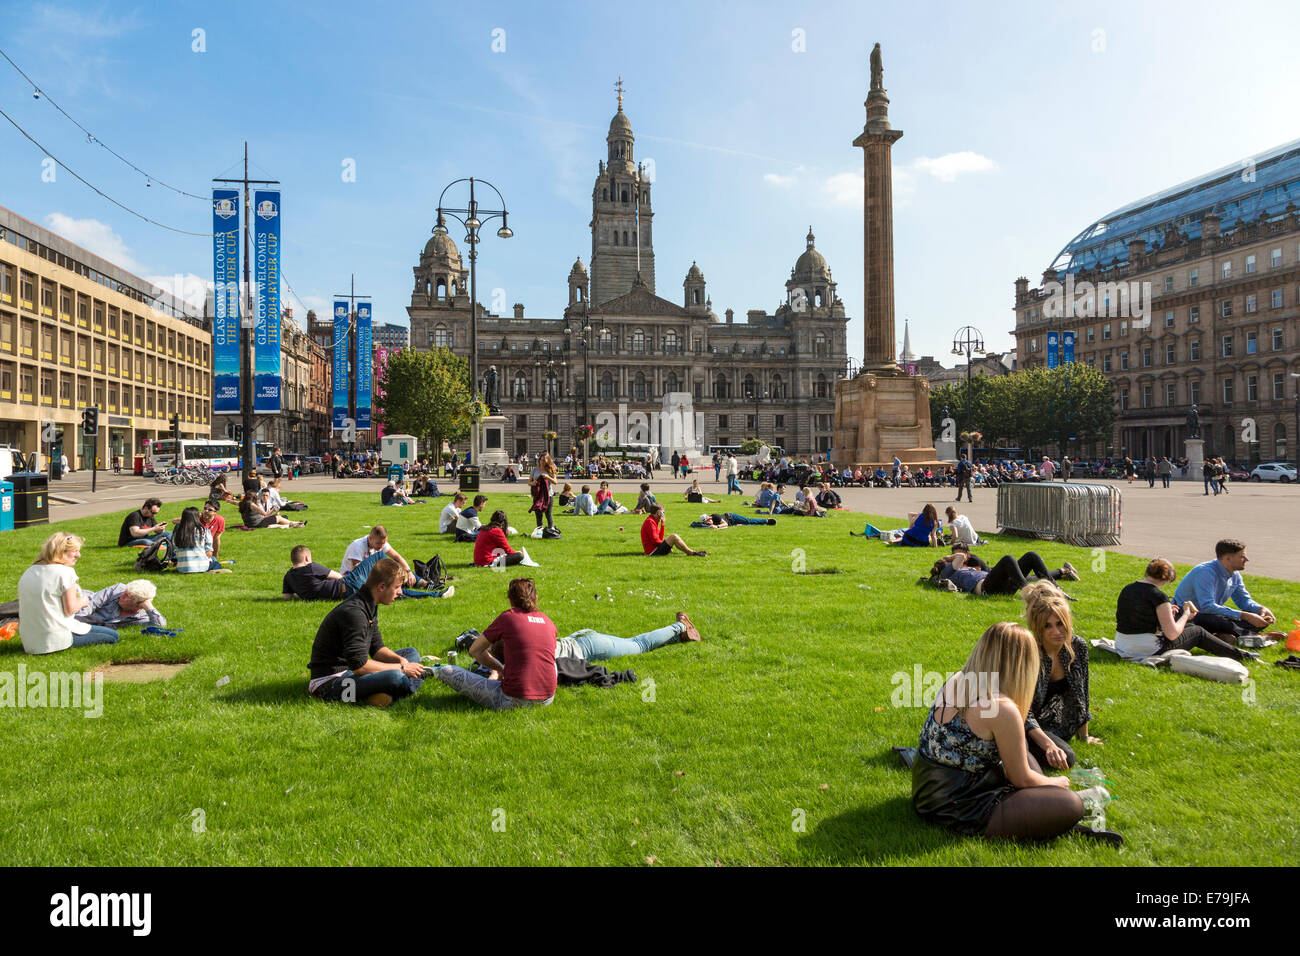 Glasgow, Scotland, UK. 10th Sept, 2014. Exceptionally high September temperatures and a long period of sunny weather - Stock Image